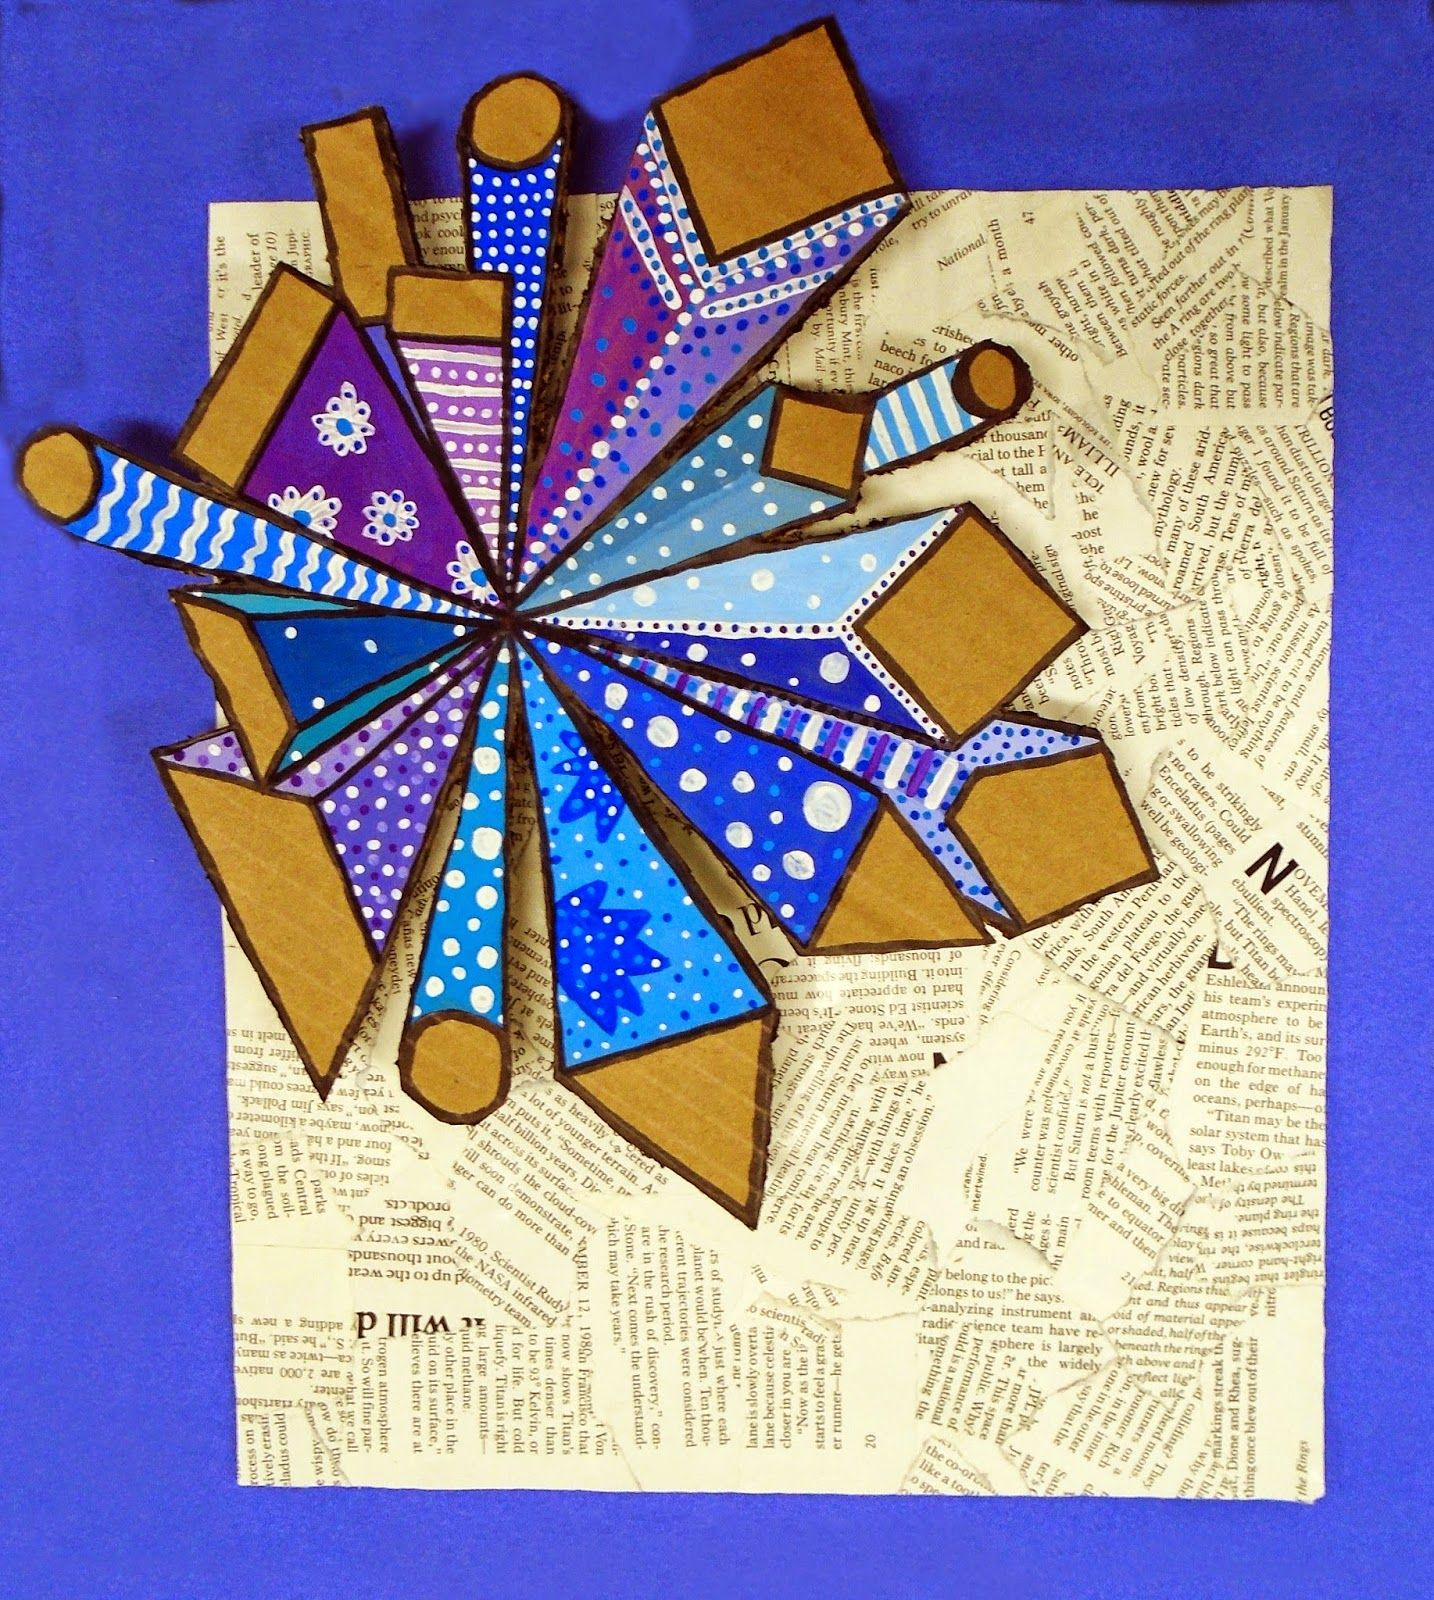 And Create Cardboard Squares To Support The Relief See